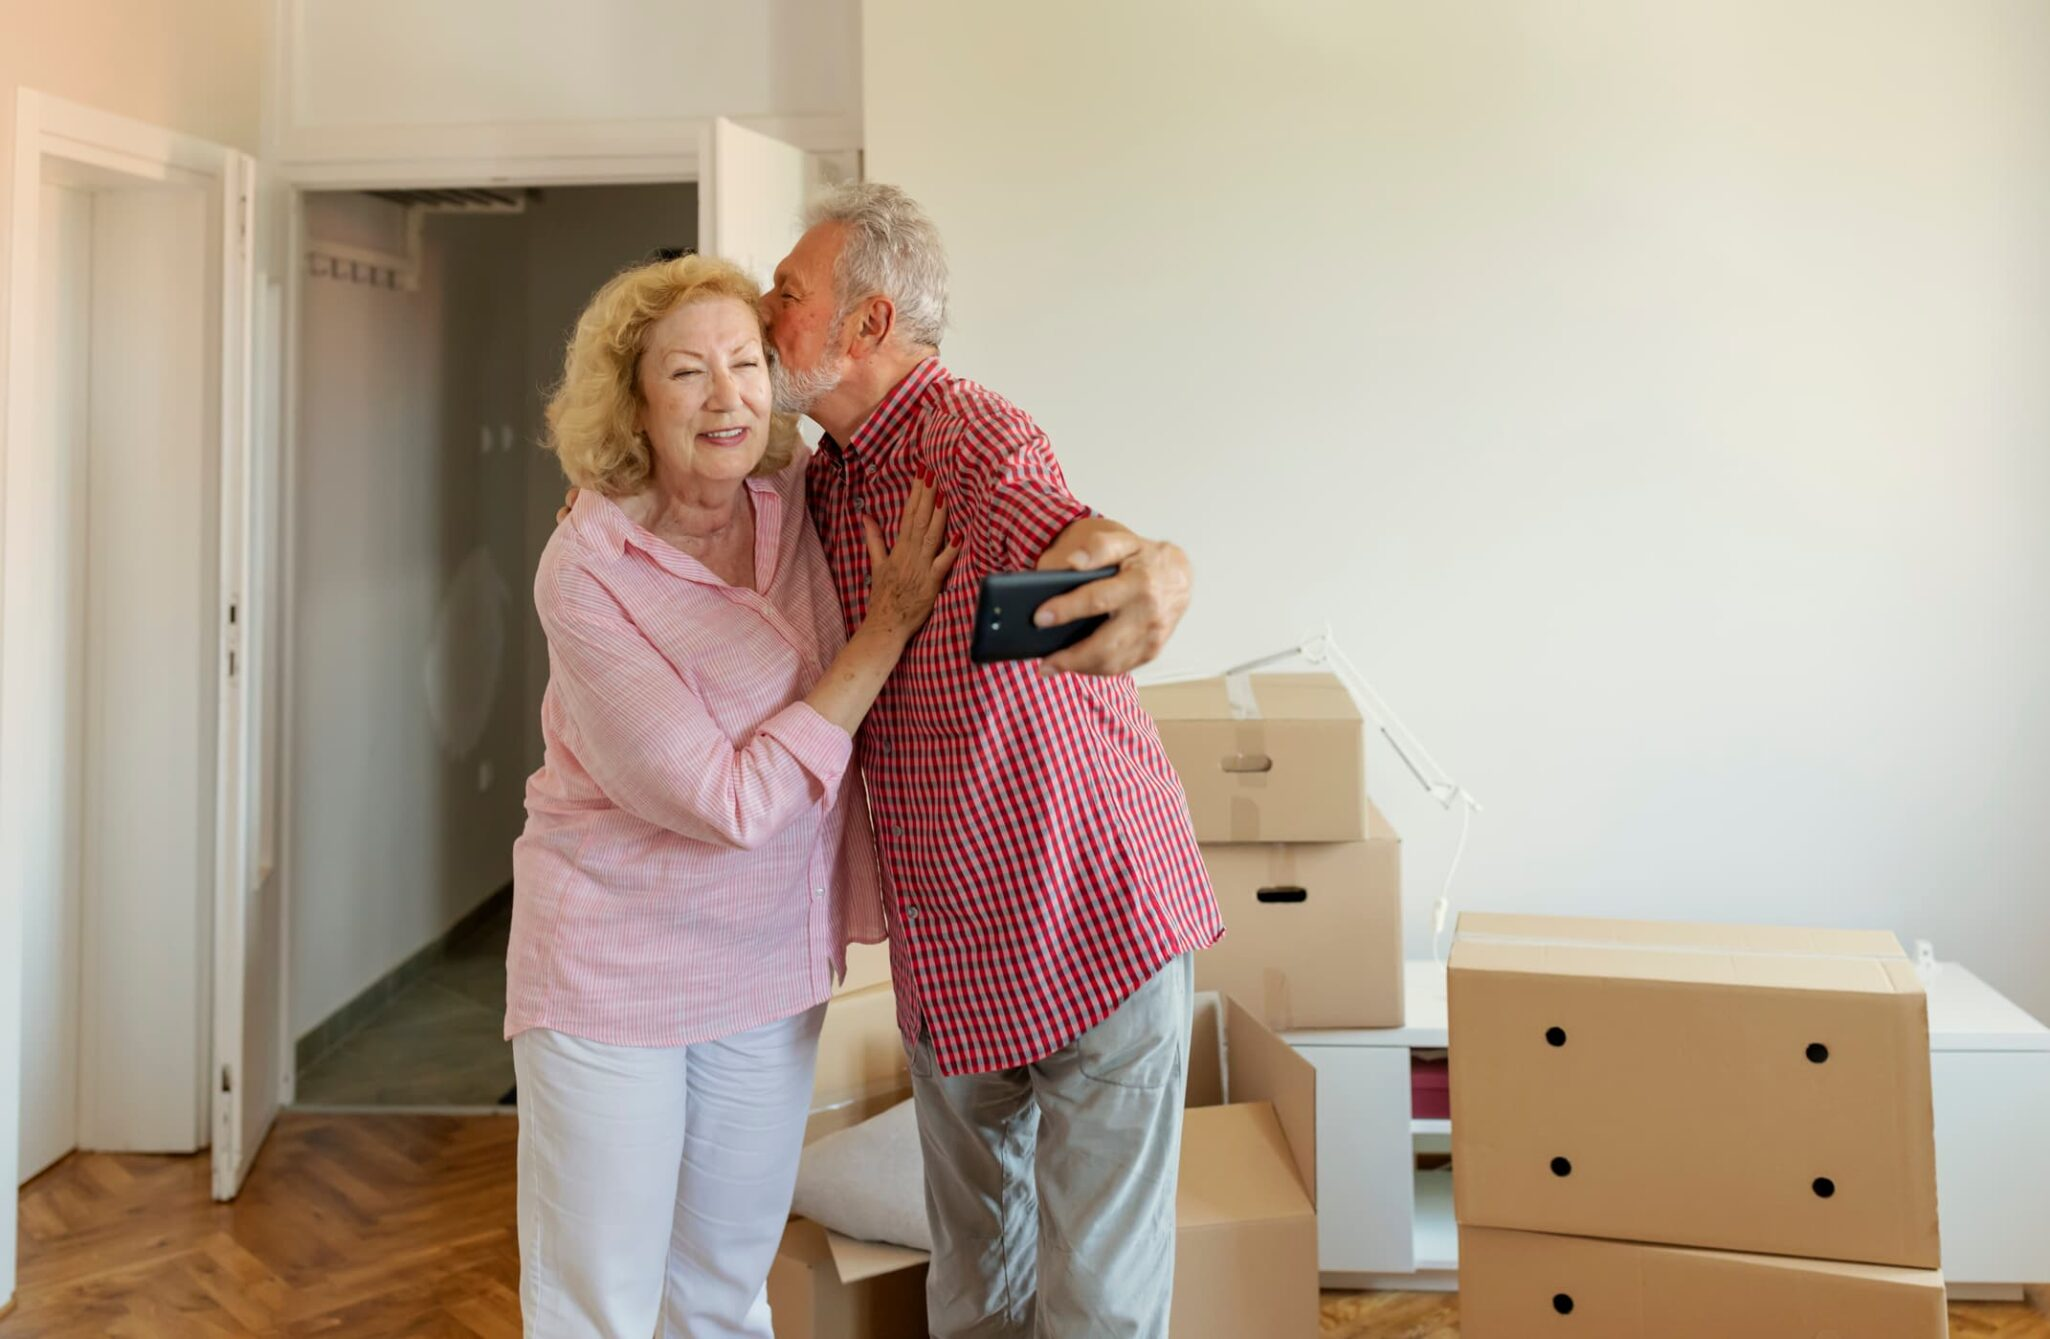 Older couple smiling and taking a selfie on move-in day with moving boxes in the background.